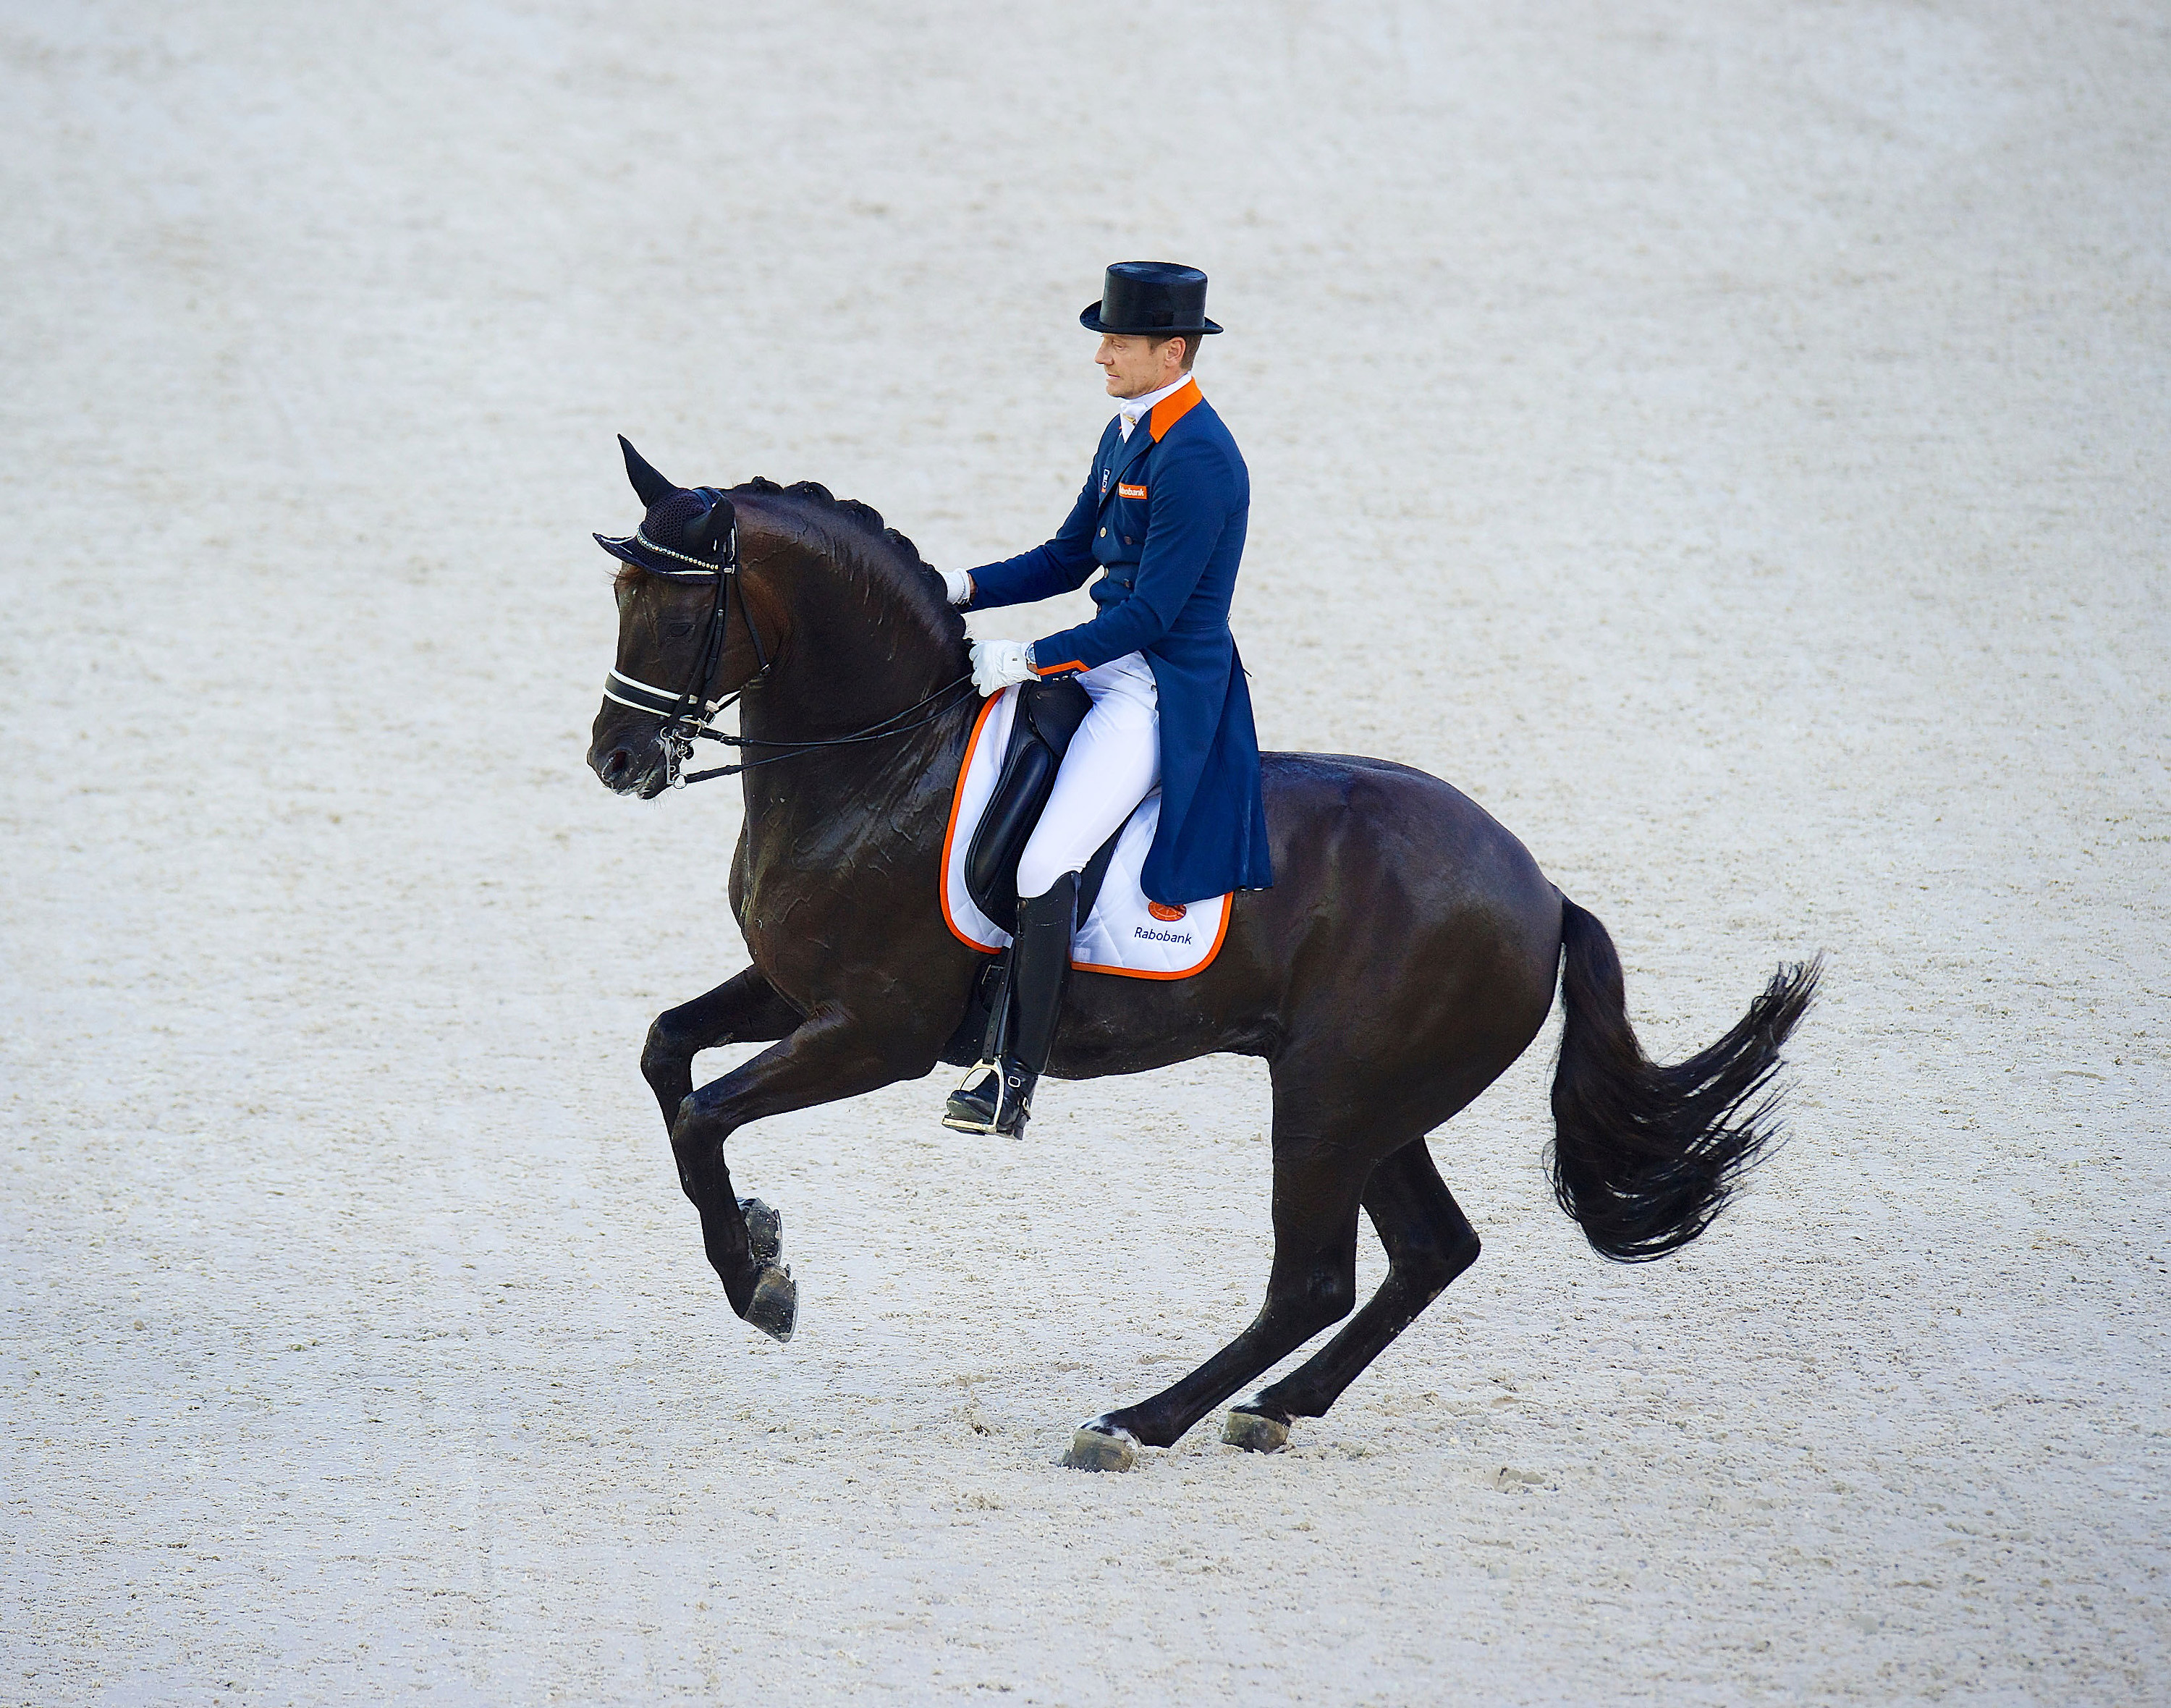 Edward Gal and Glock's Voice pirouetted before winning bronze in the dressage Mandatory © FEI / Arnd Bronkhorst / Pool Pic Livepic